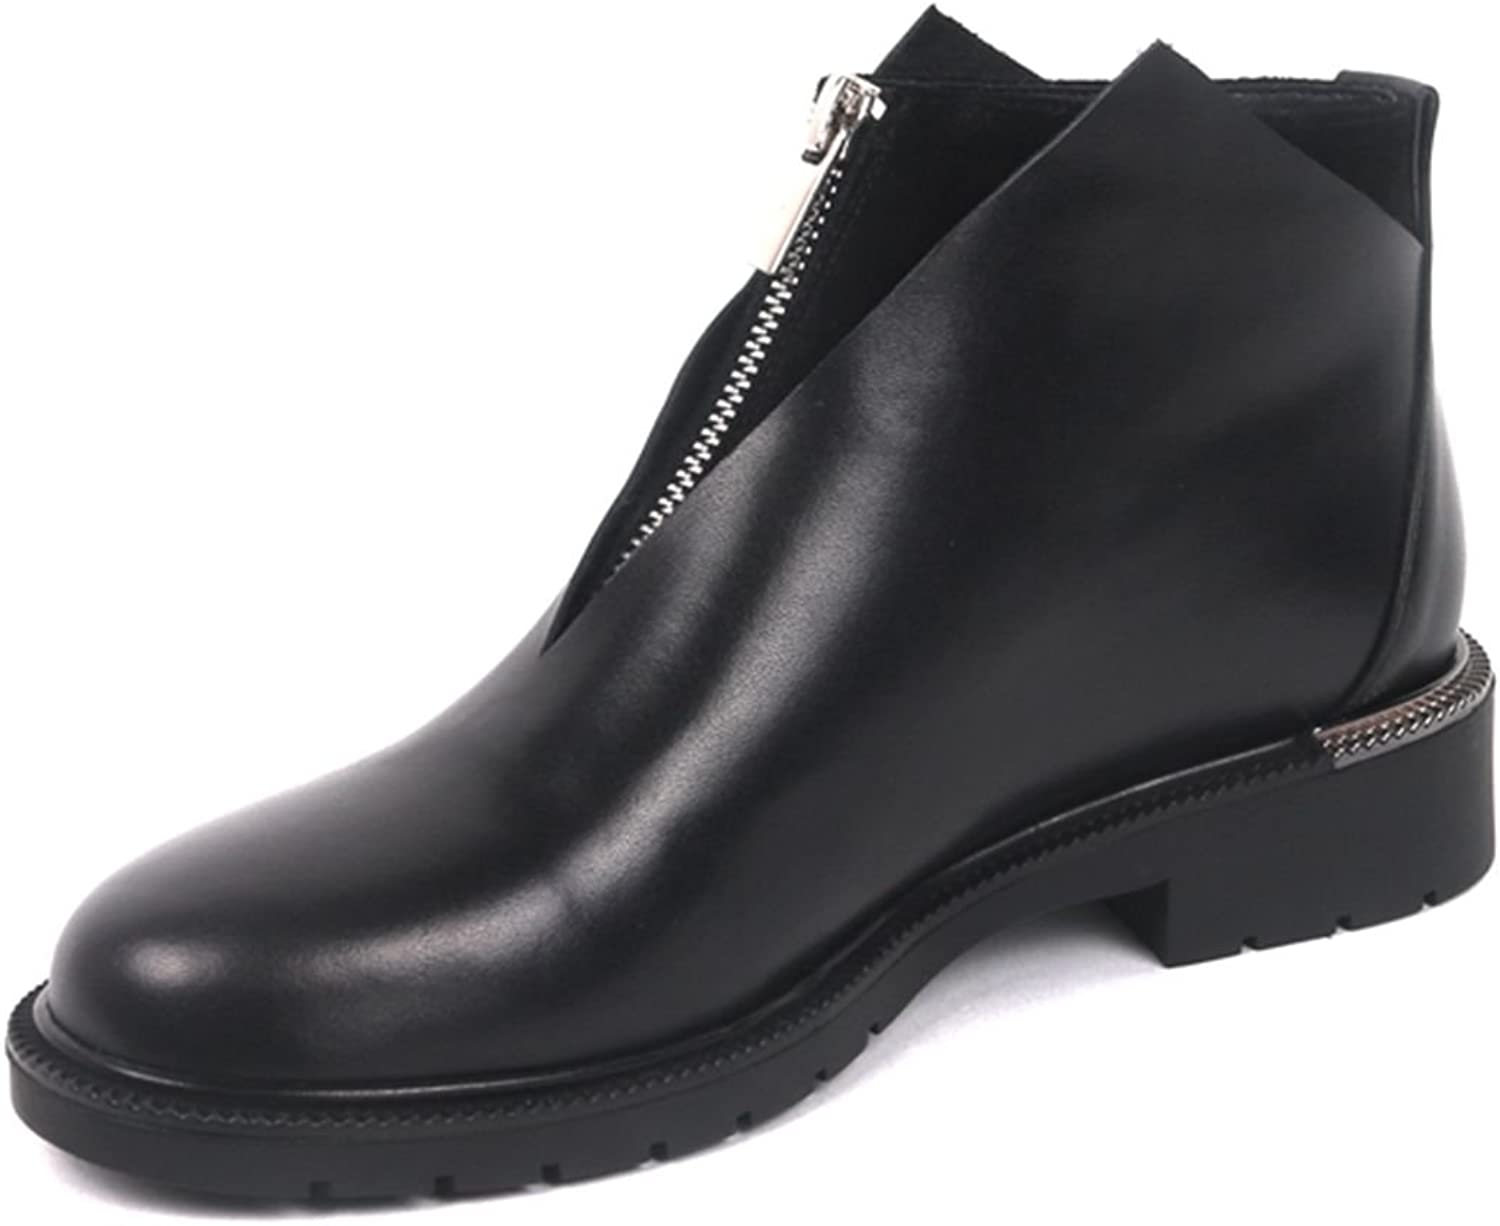 DoraTasia Women's Black Cow Leather Round Toe Concise Zipper Ankle Booties